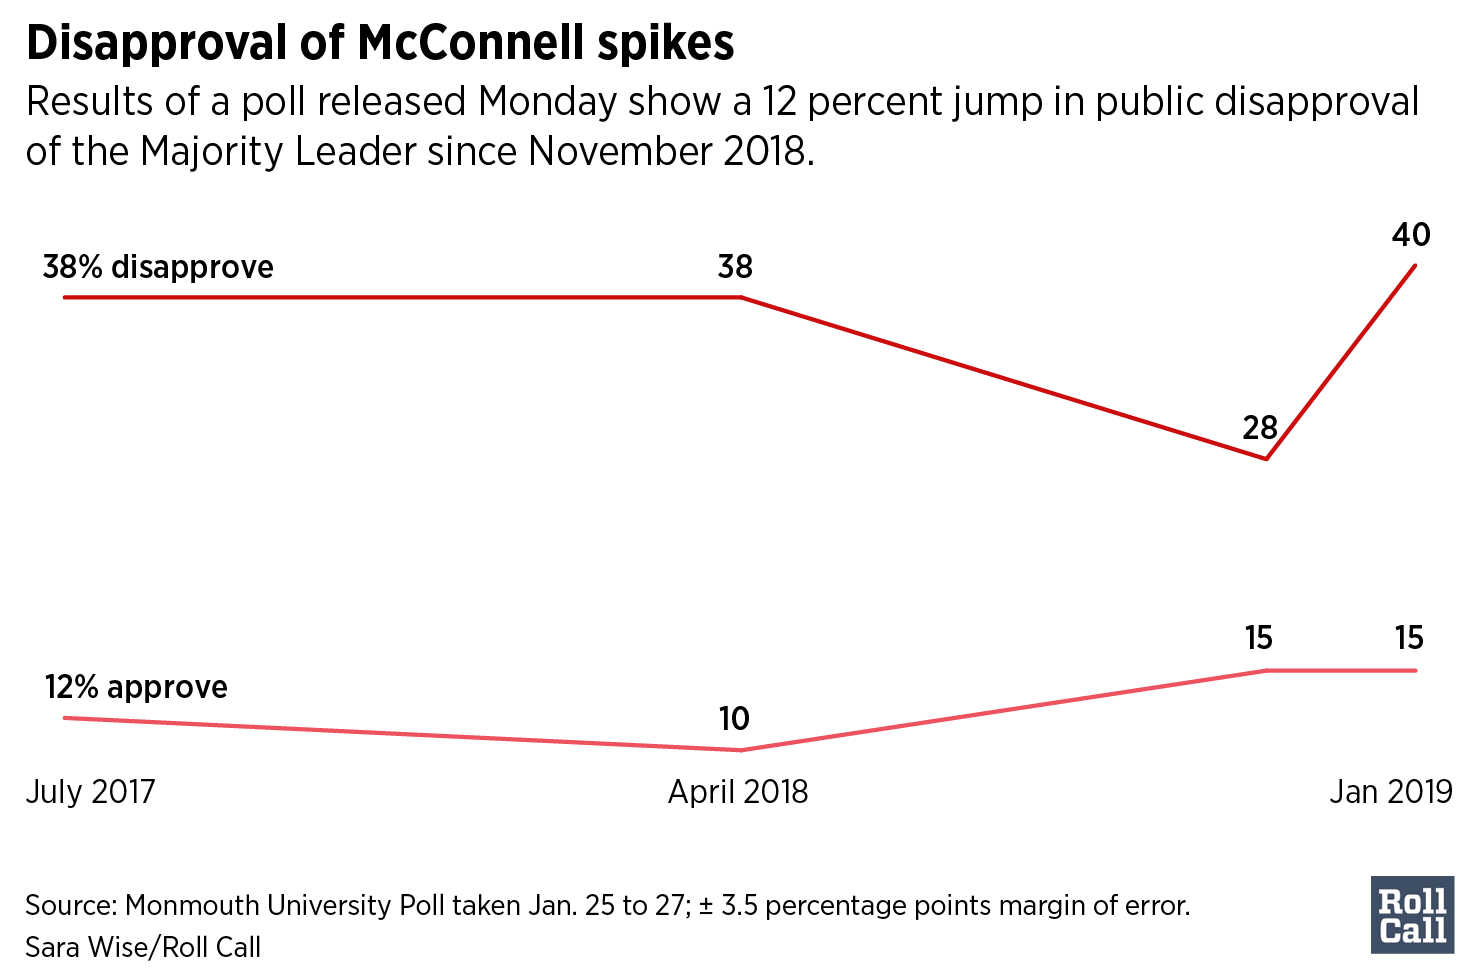 Disapproval of McConnell spikes